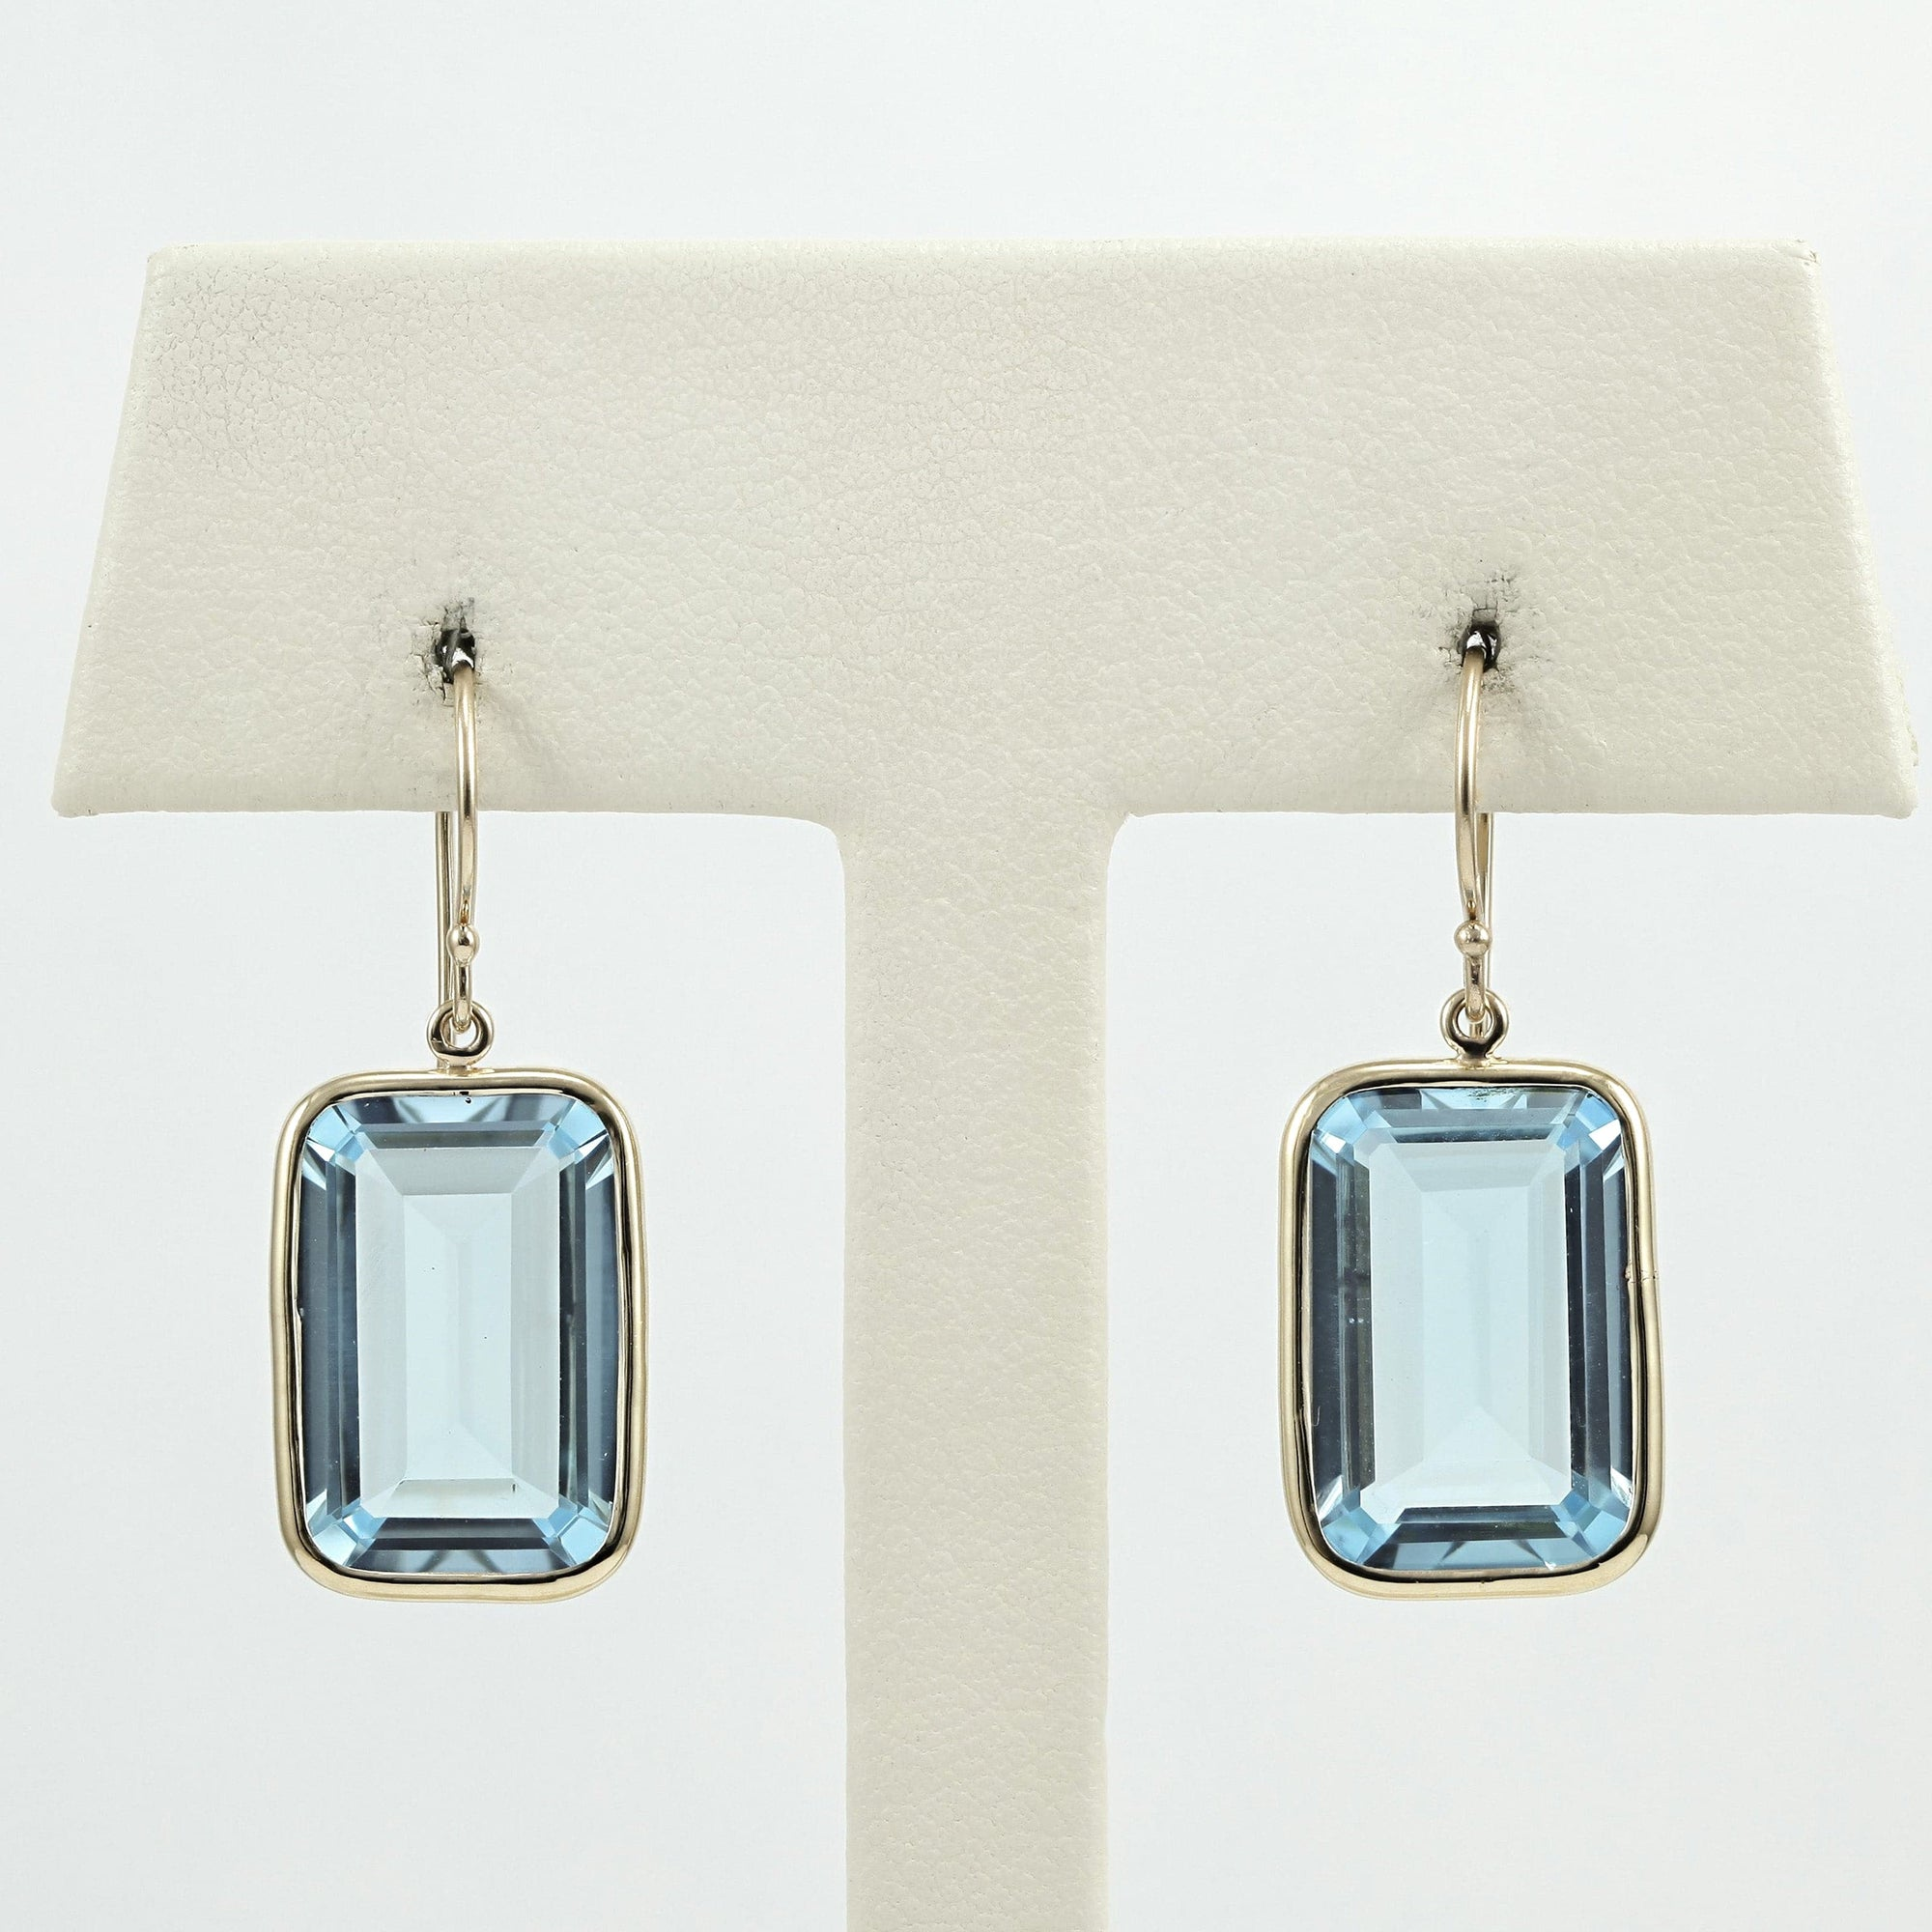 Jamie Joseph 14k YG rectangular sky blue topaz earrings